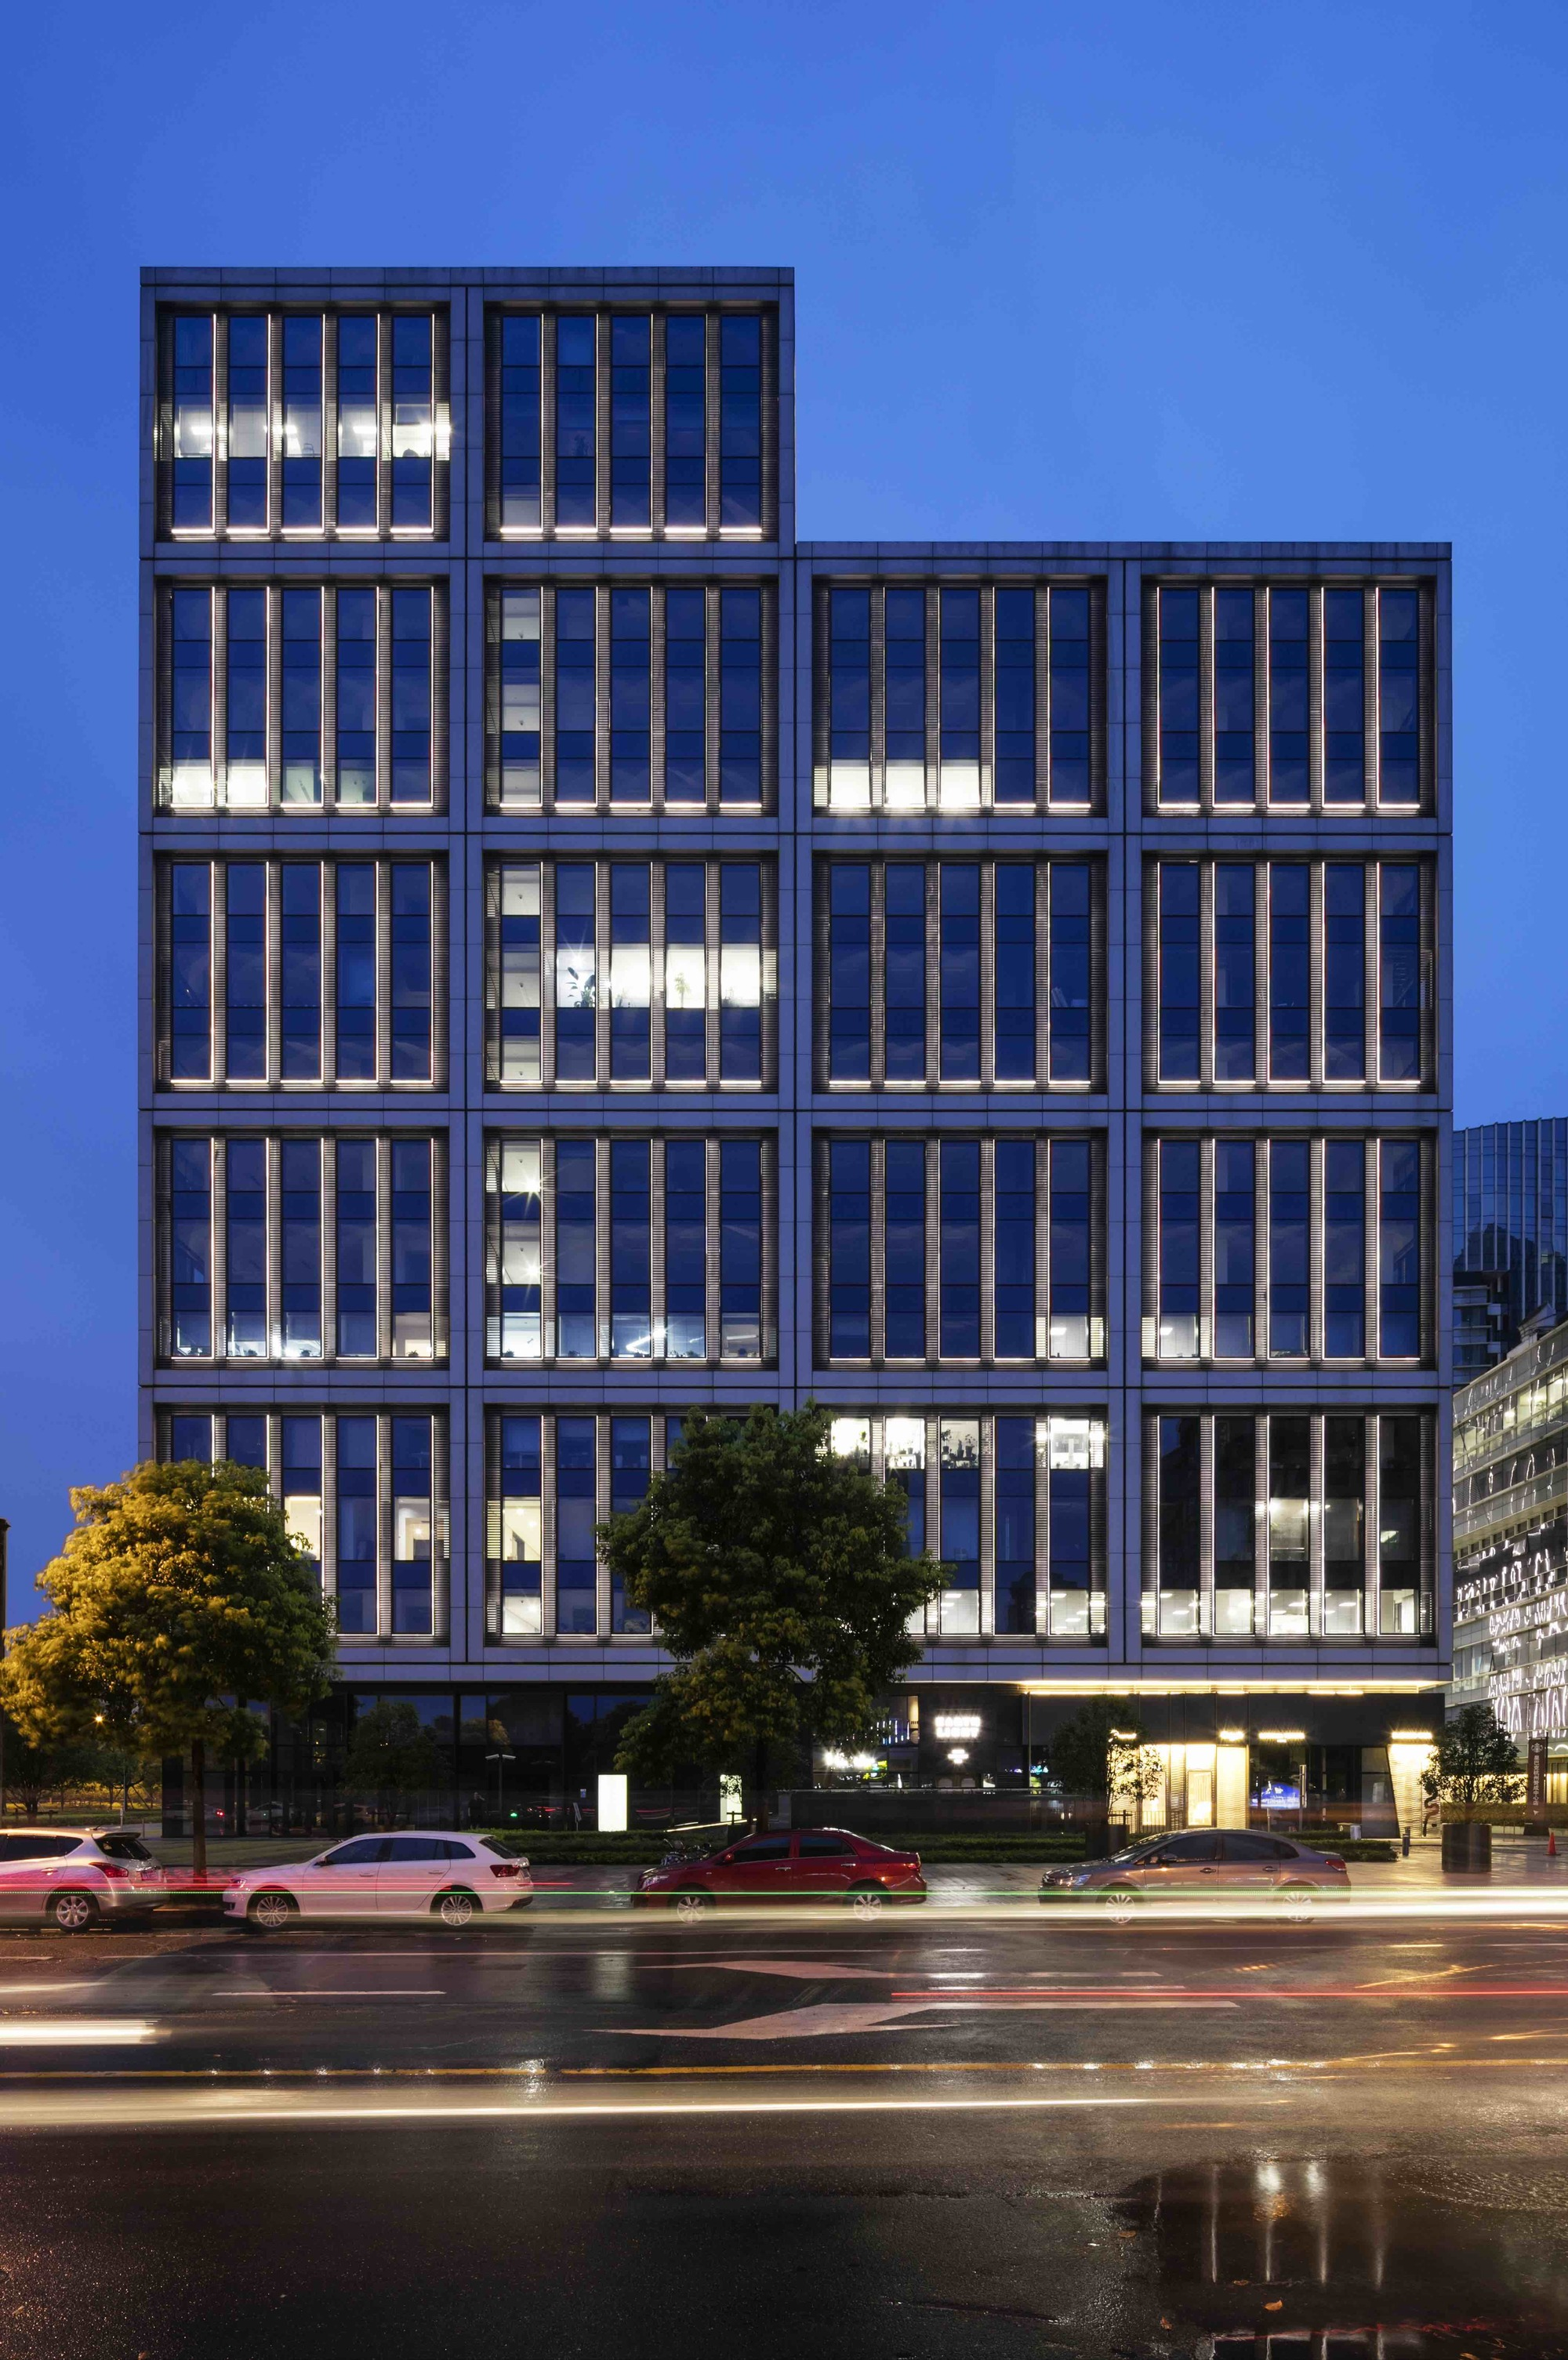 Architects. Gmp Architekten